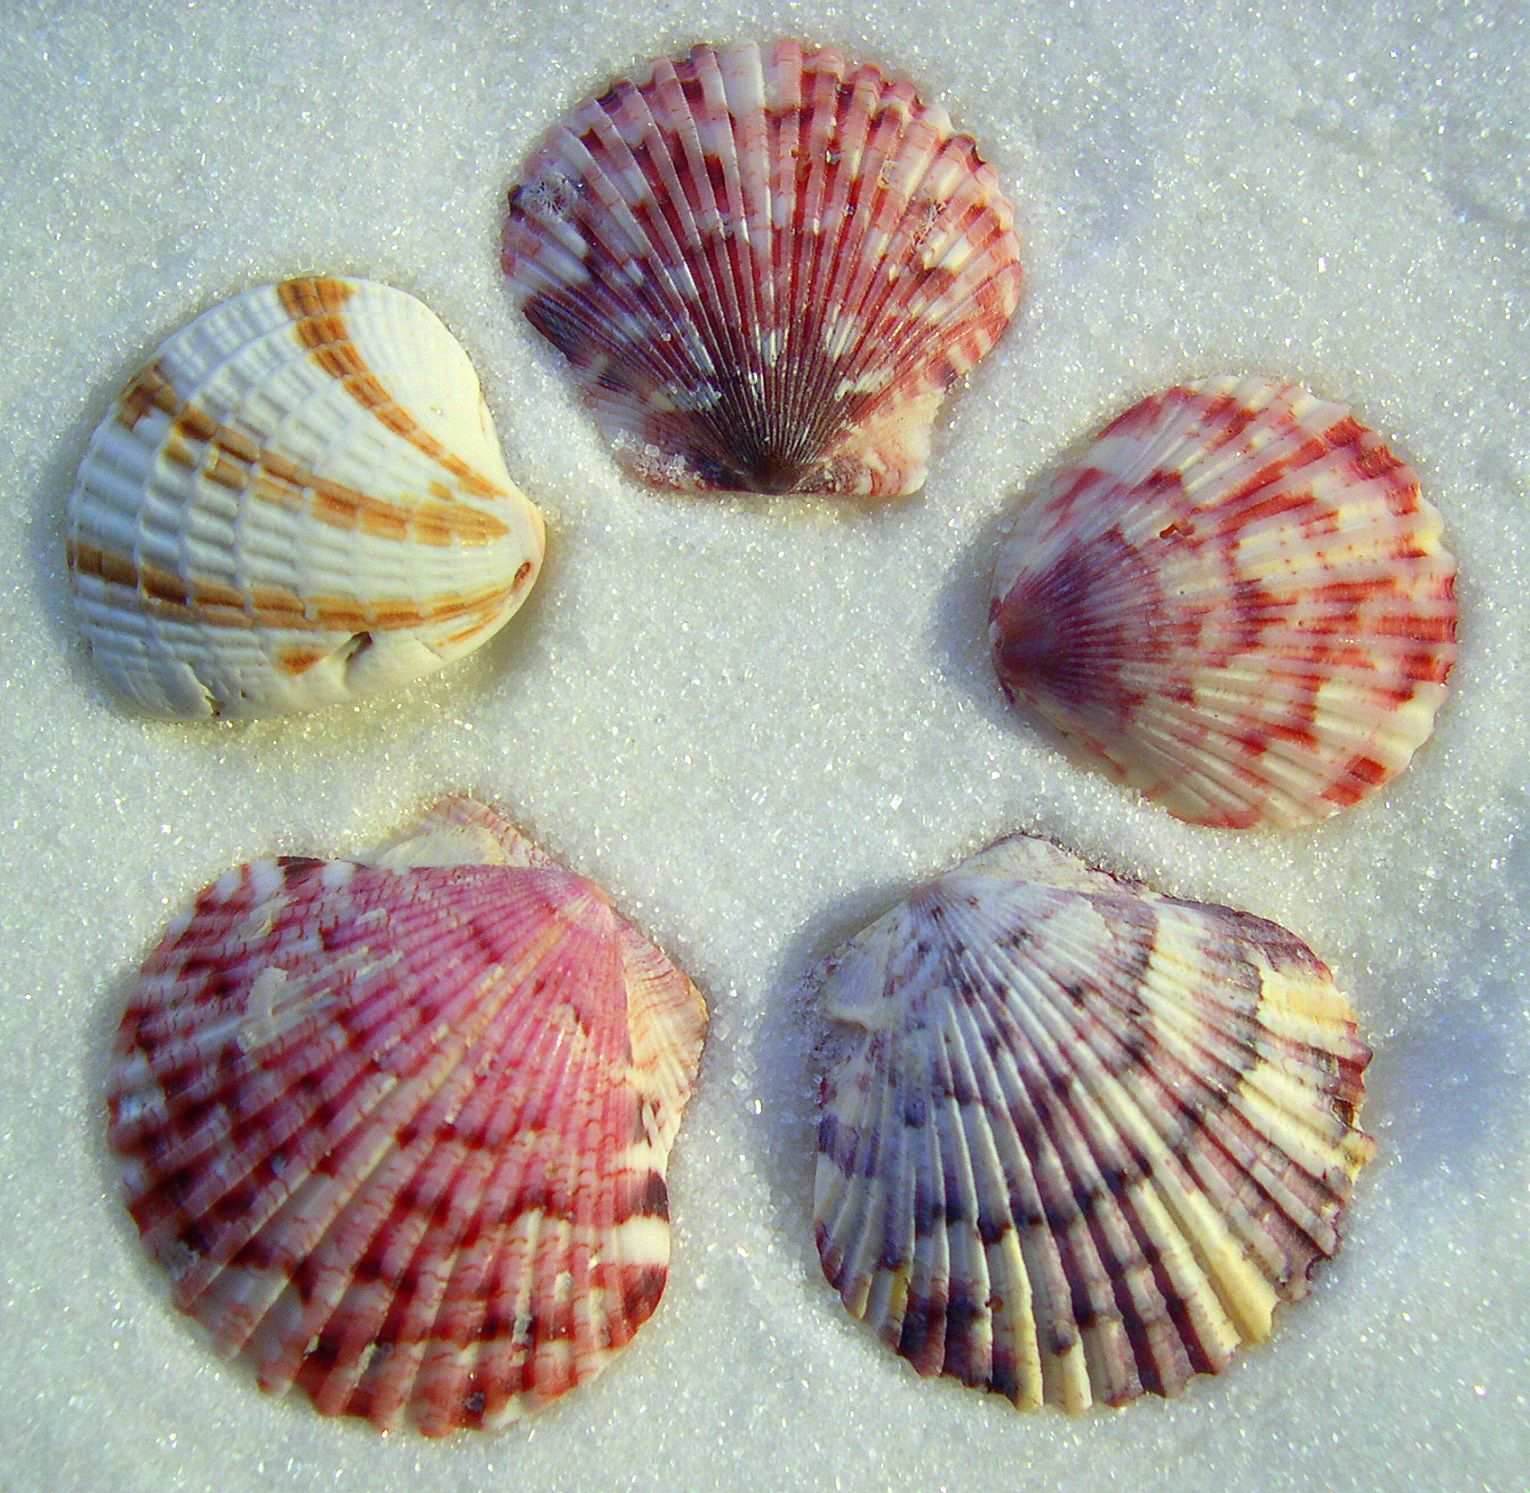 Colorful pictures of seashells seashell driveway seashells by three scallop shells and one cross barred venus shell biocorpaavc Image collections